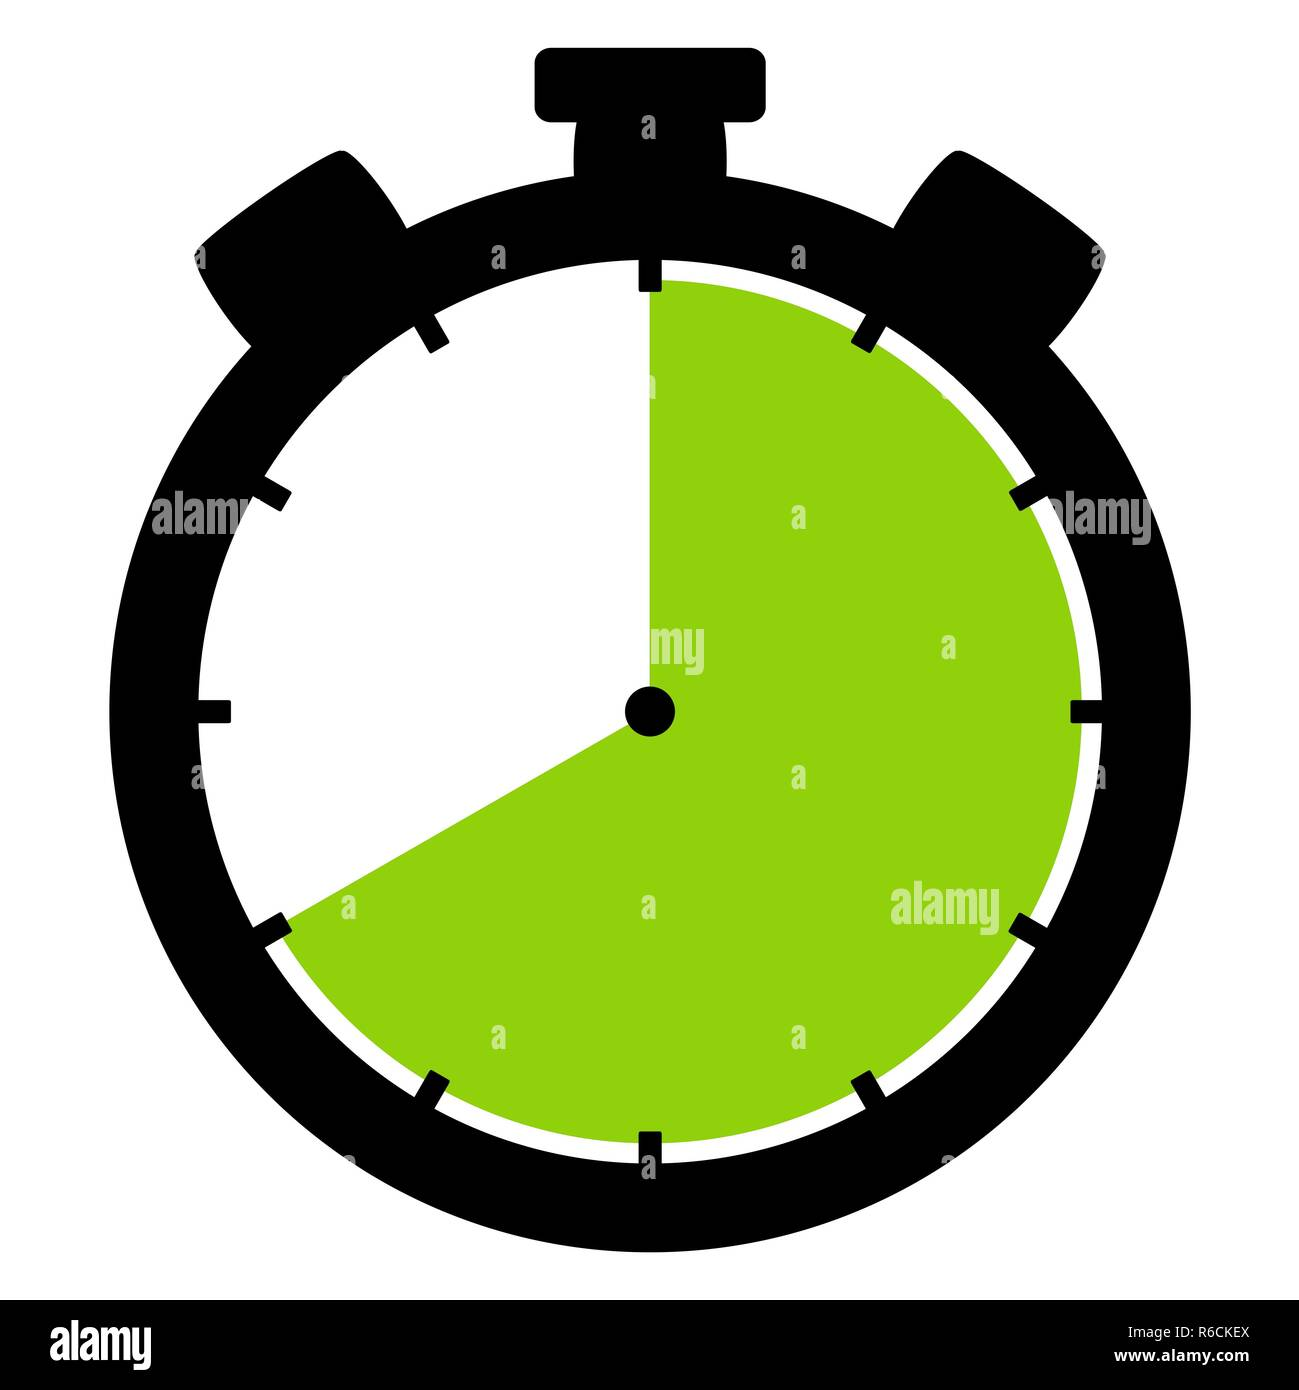 stopwatch icon: 40 minutes 40 seconds or 8 hours - Stock Image